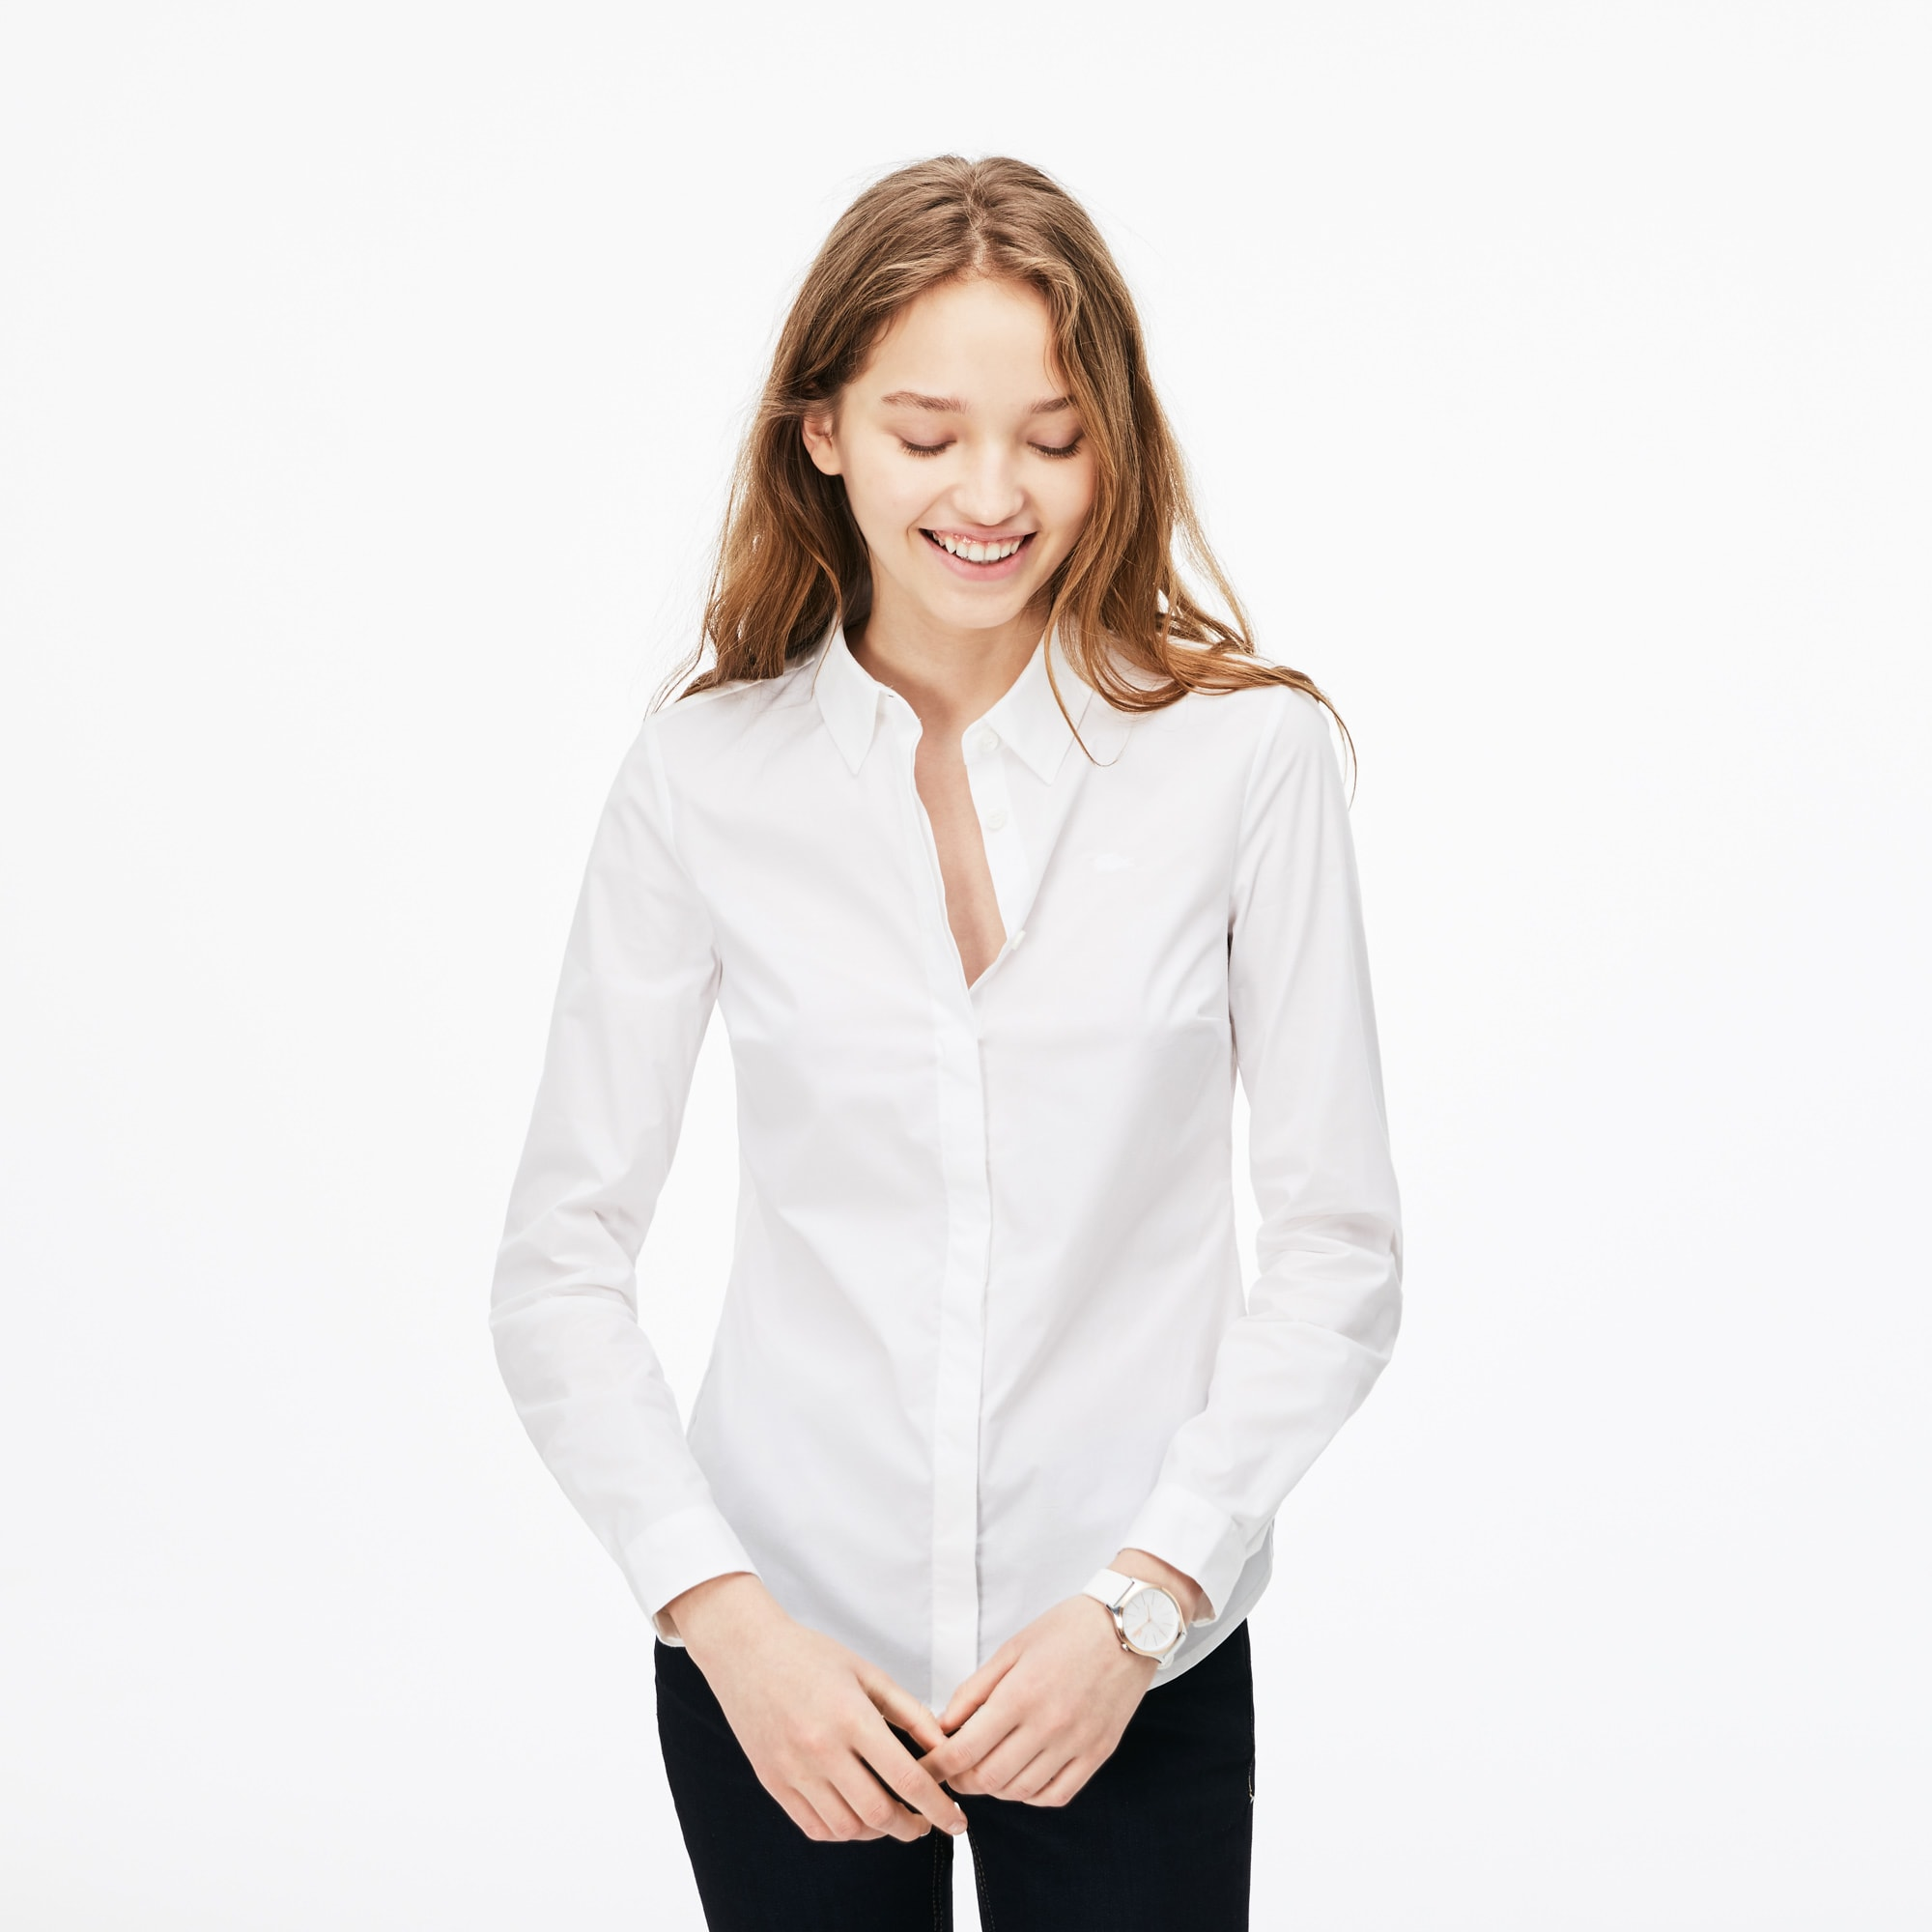 Shirt Dames Slim Fit Katoenpopeline met Stretch